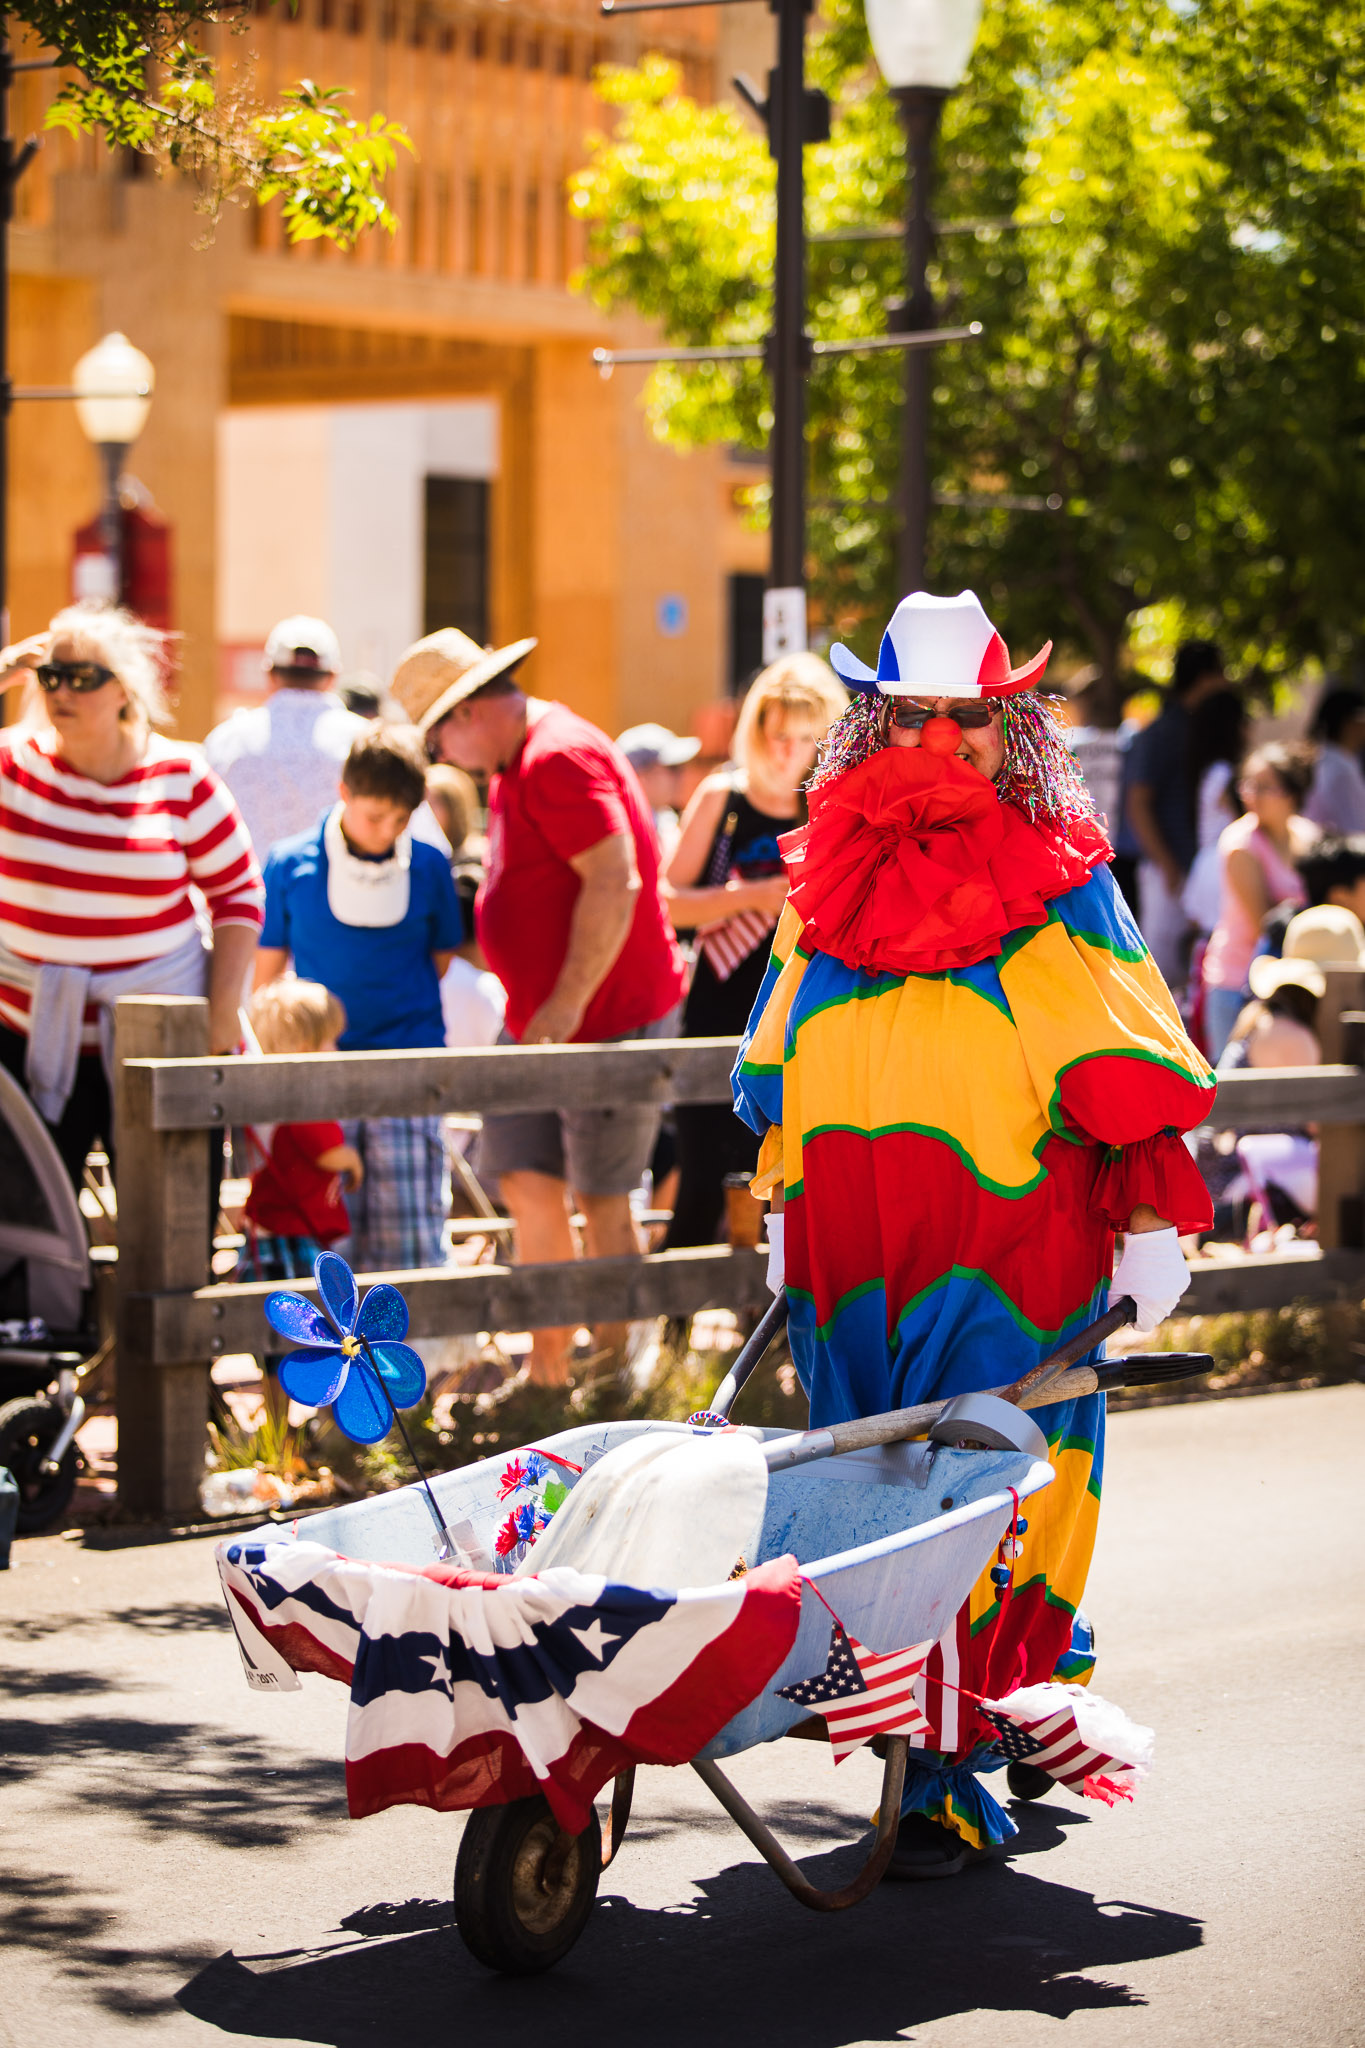 Archer_Inspired_Photography_Morgan_Hill_California_4th_of_july_parade-163.jpg